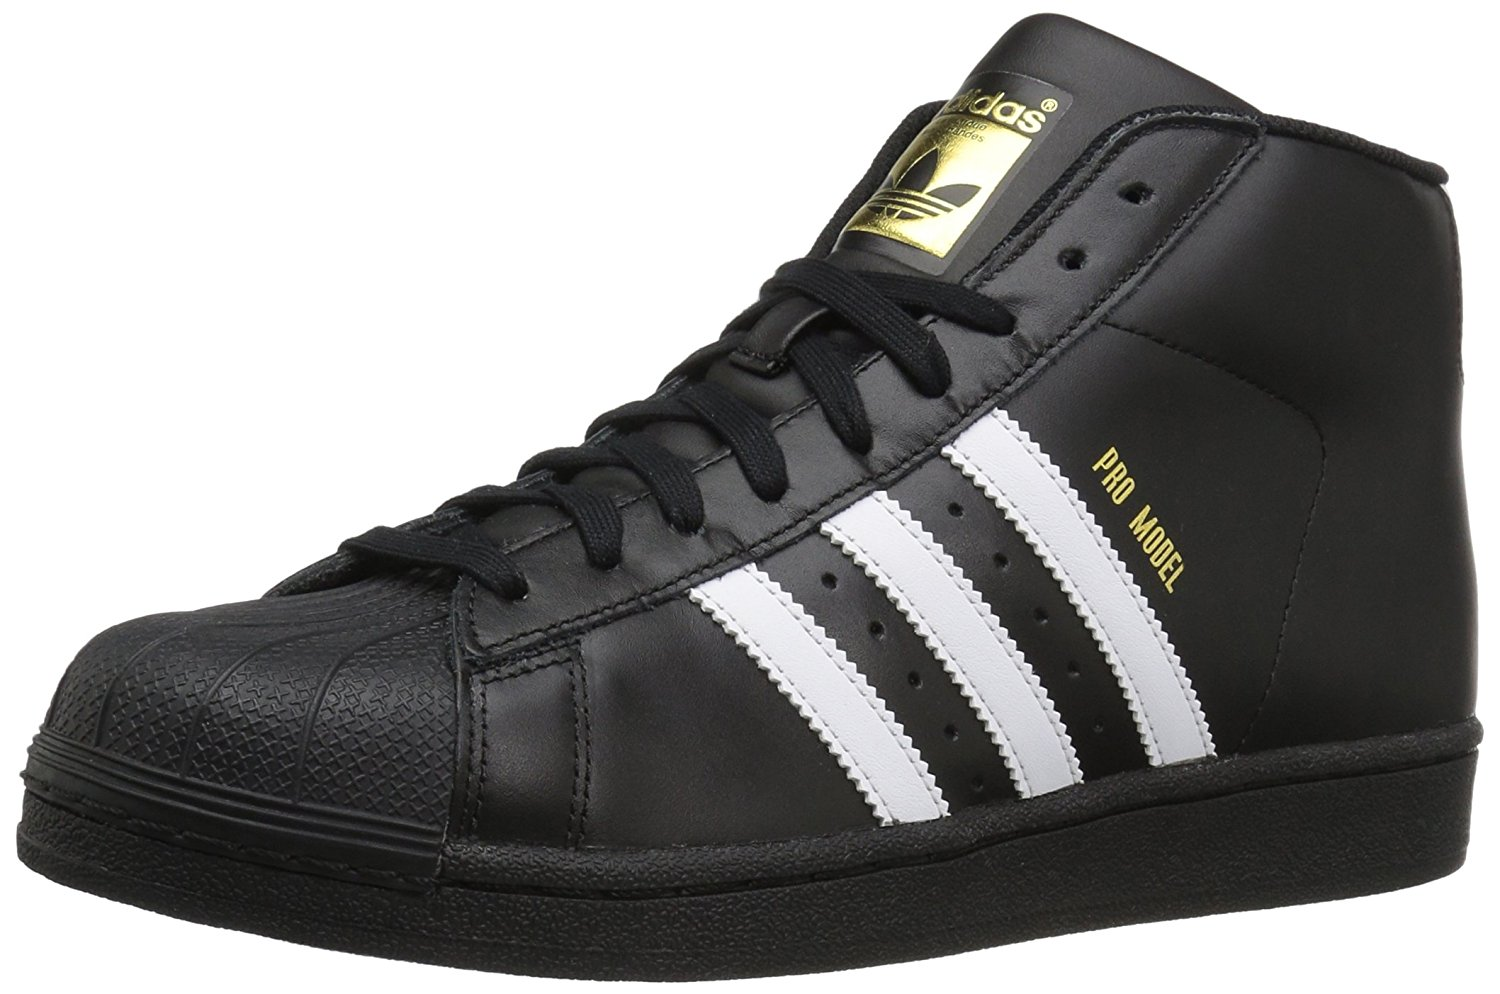 Adidas Pro Model Angled View